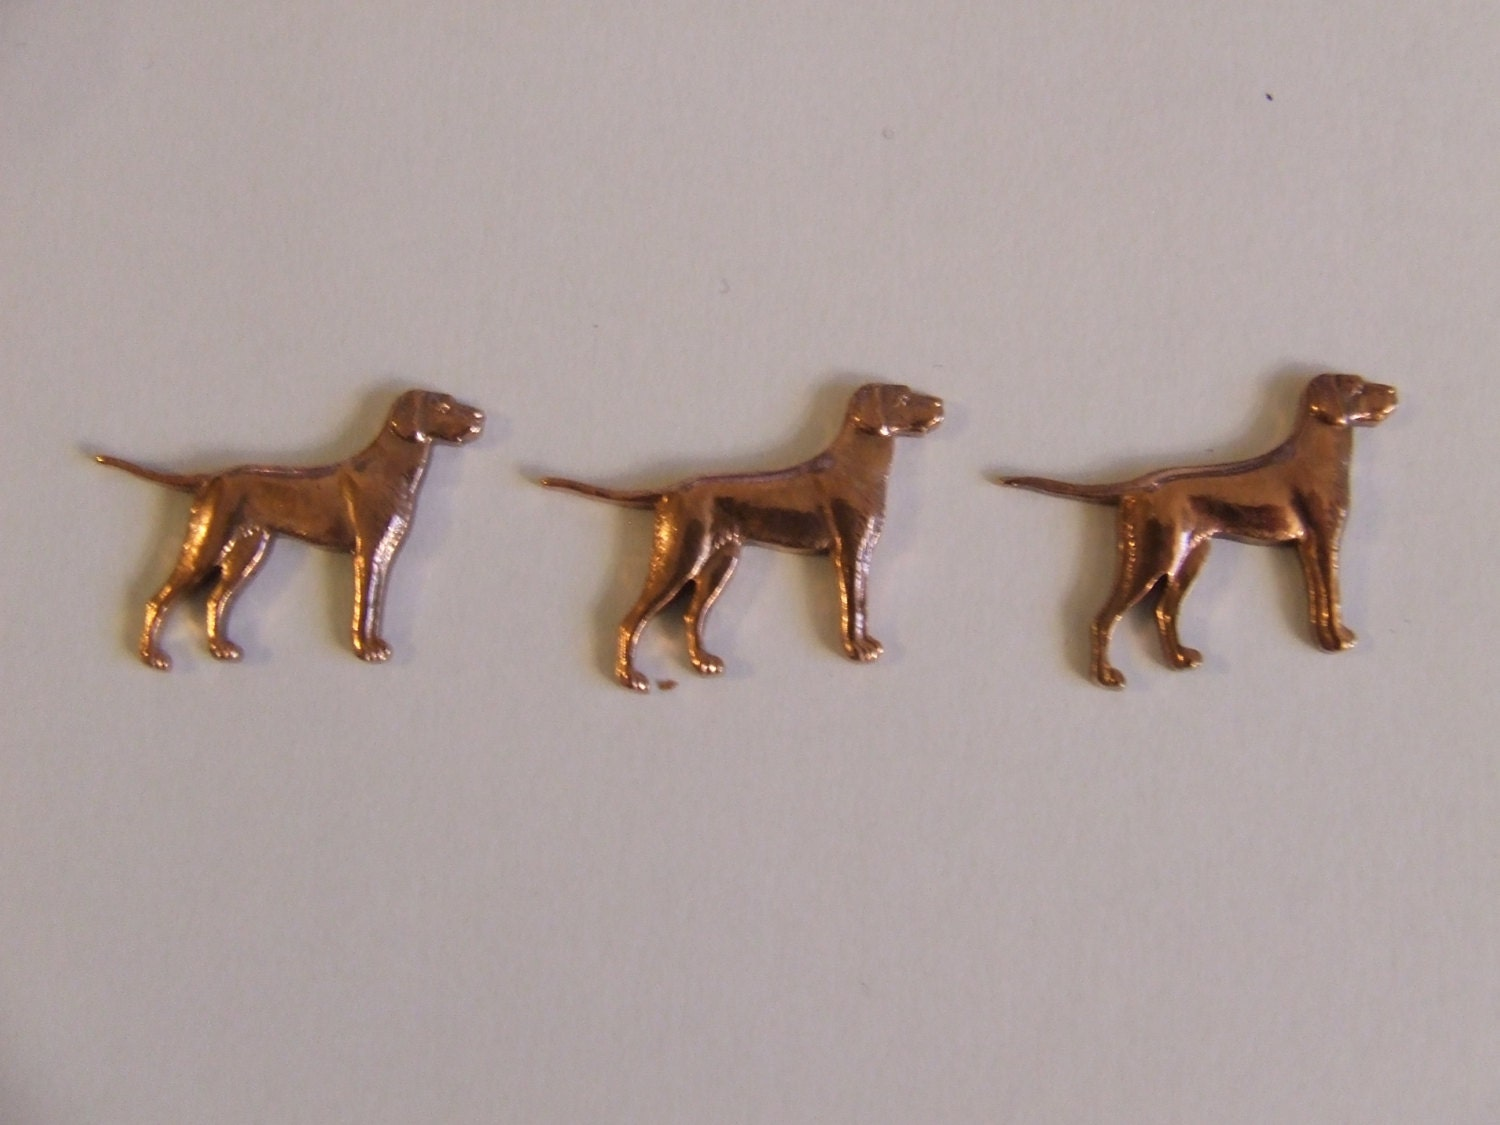 Antique Jewellery Stampings of German Pointer Dogs Original Findings in Strong Copper Alloy Quantity 10